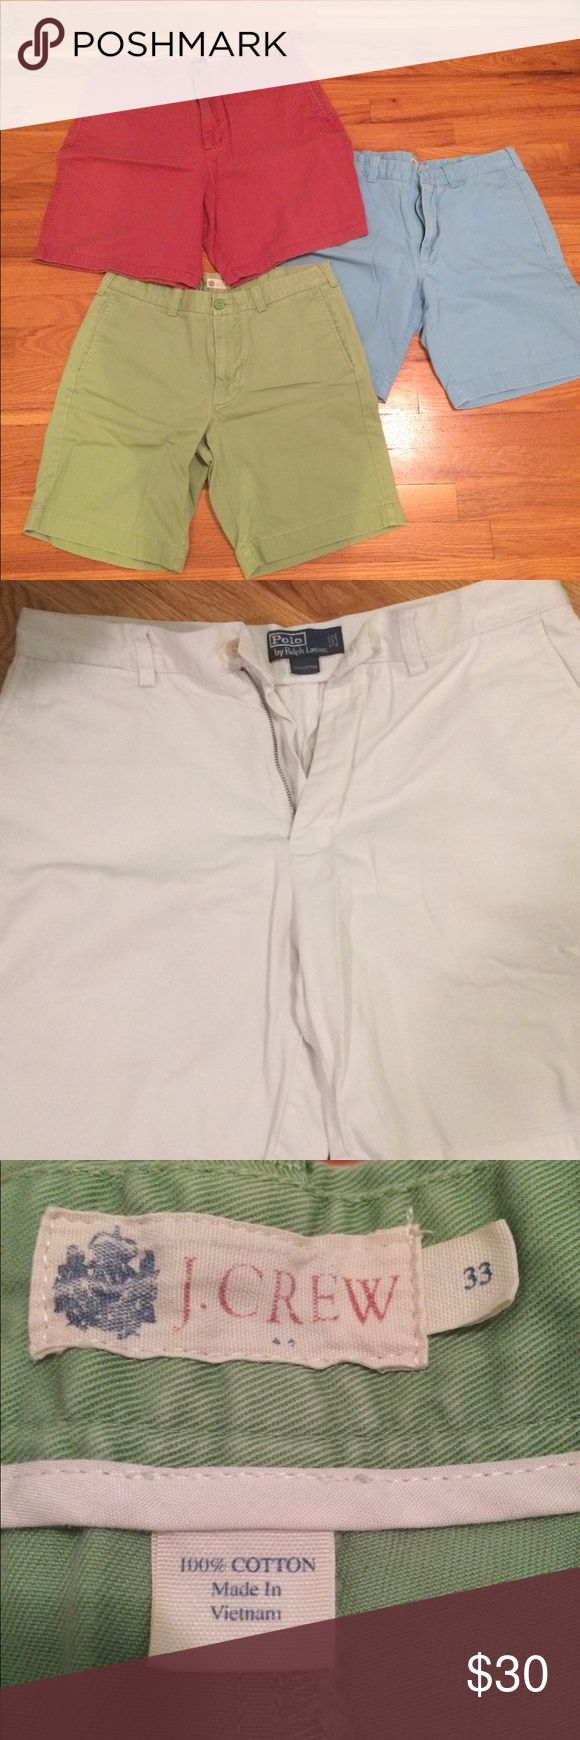 J Crew, Club Room, and Polo khaki shorts. All in great shape. All size 33. Selling as a bundle. J. Crew Shorts Cargo